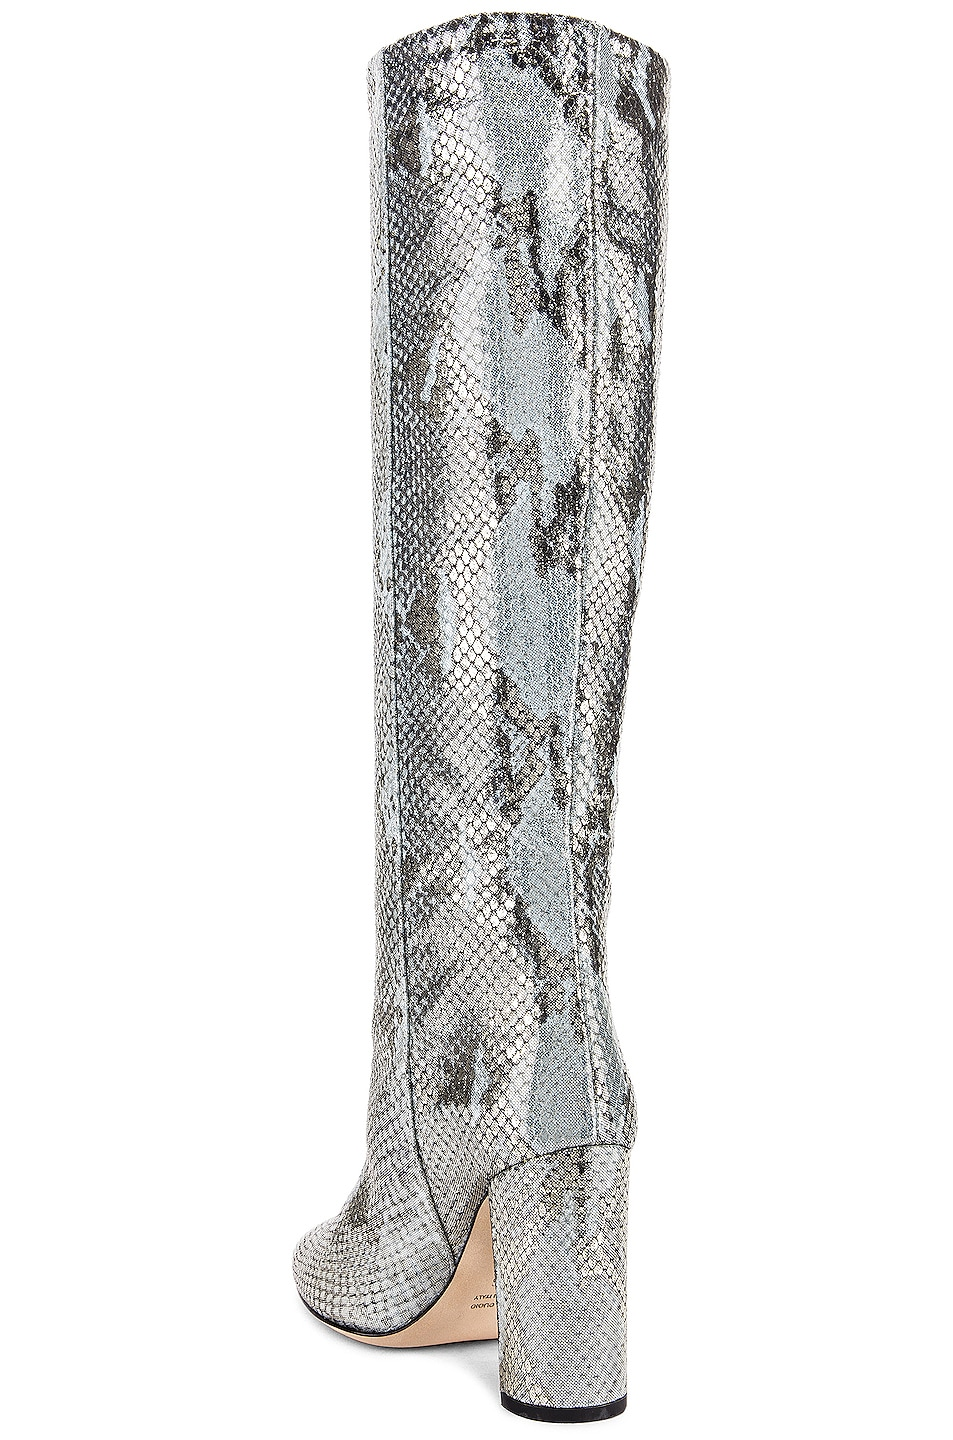 Image 3 of Paris Texas Python Lame Print Boot in Light Blue